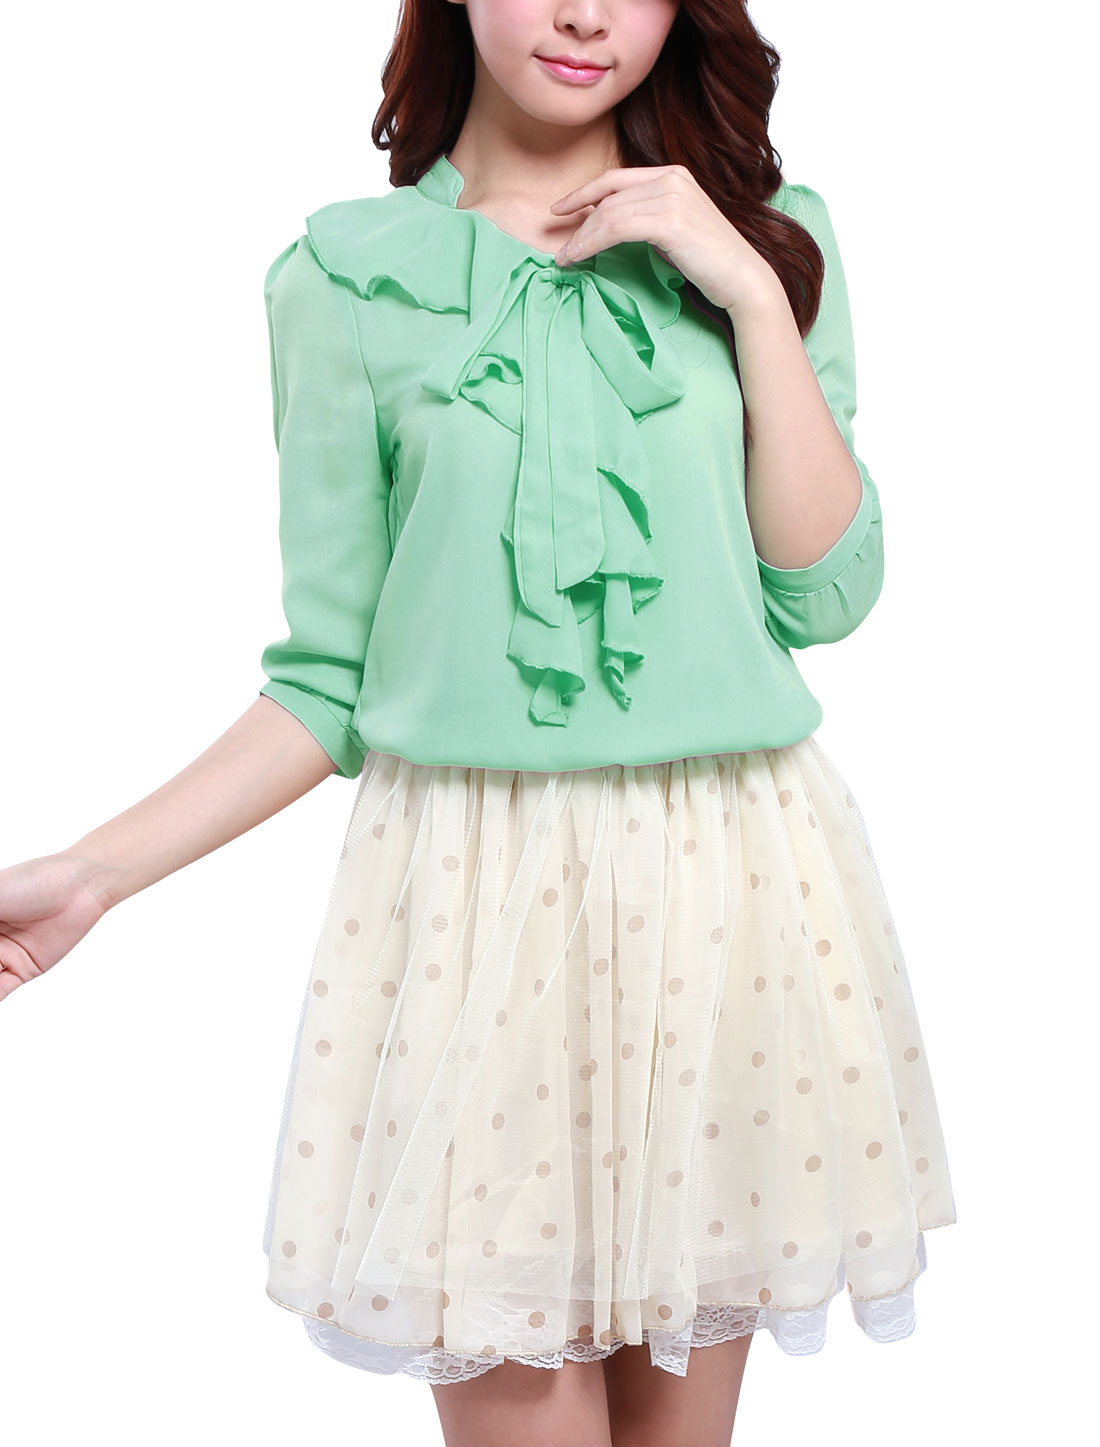 Lady Self Tie Knot 3/4 Sleeves Flounce Casual Blouse Green XL